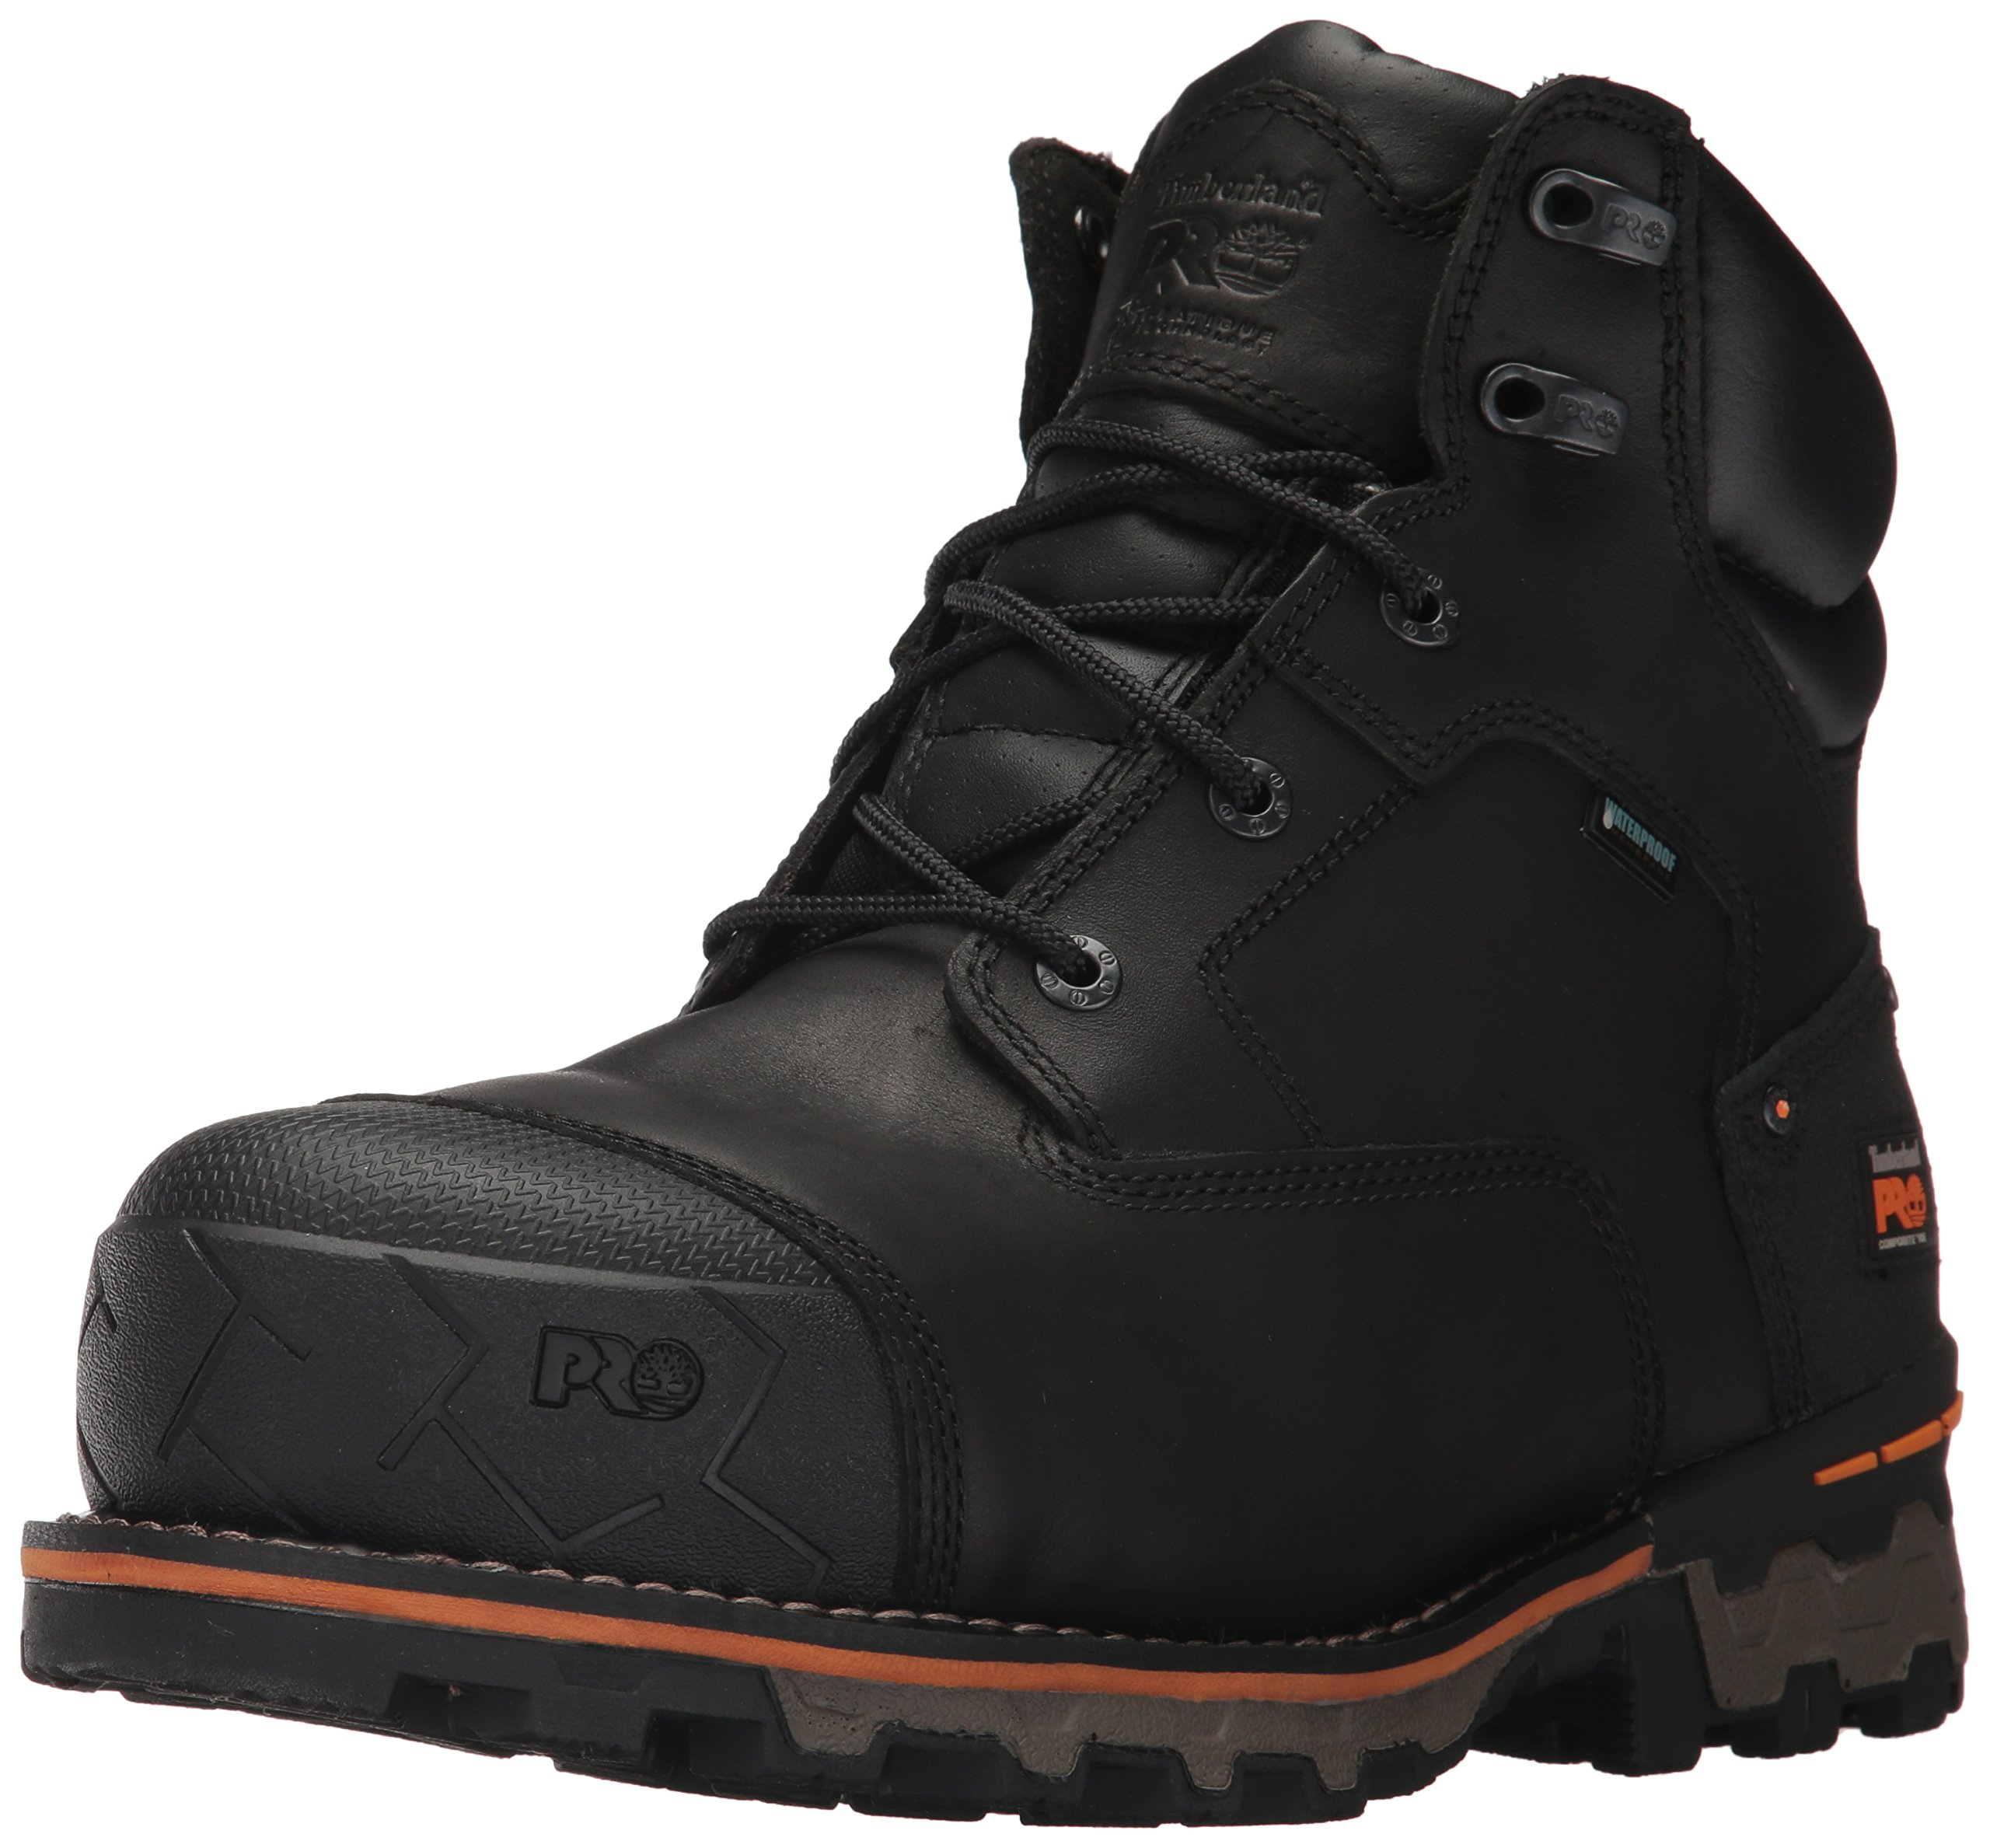 Timberland PRO Men's Boondock 6'' Composite Toe Waterproof Industrial & Construction Shoe, Black Full Grain Leather, 12 M US by Timberland PRO